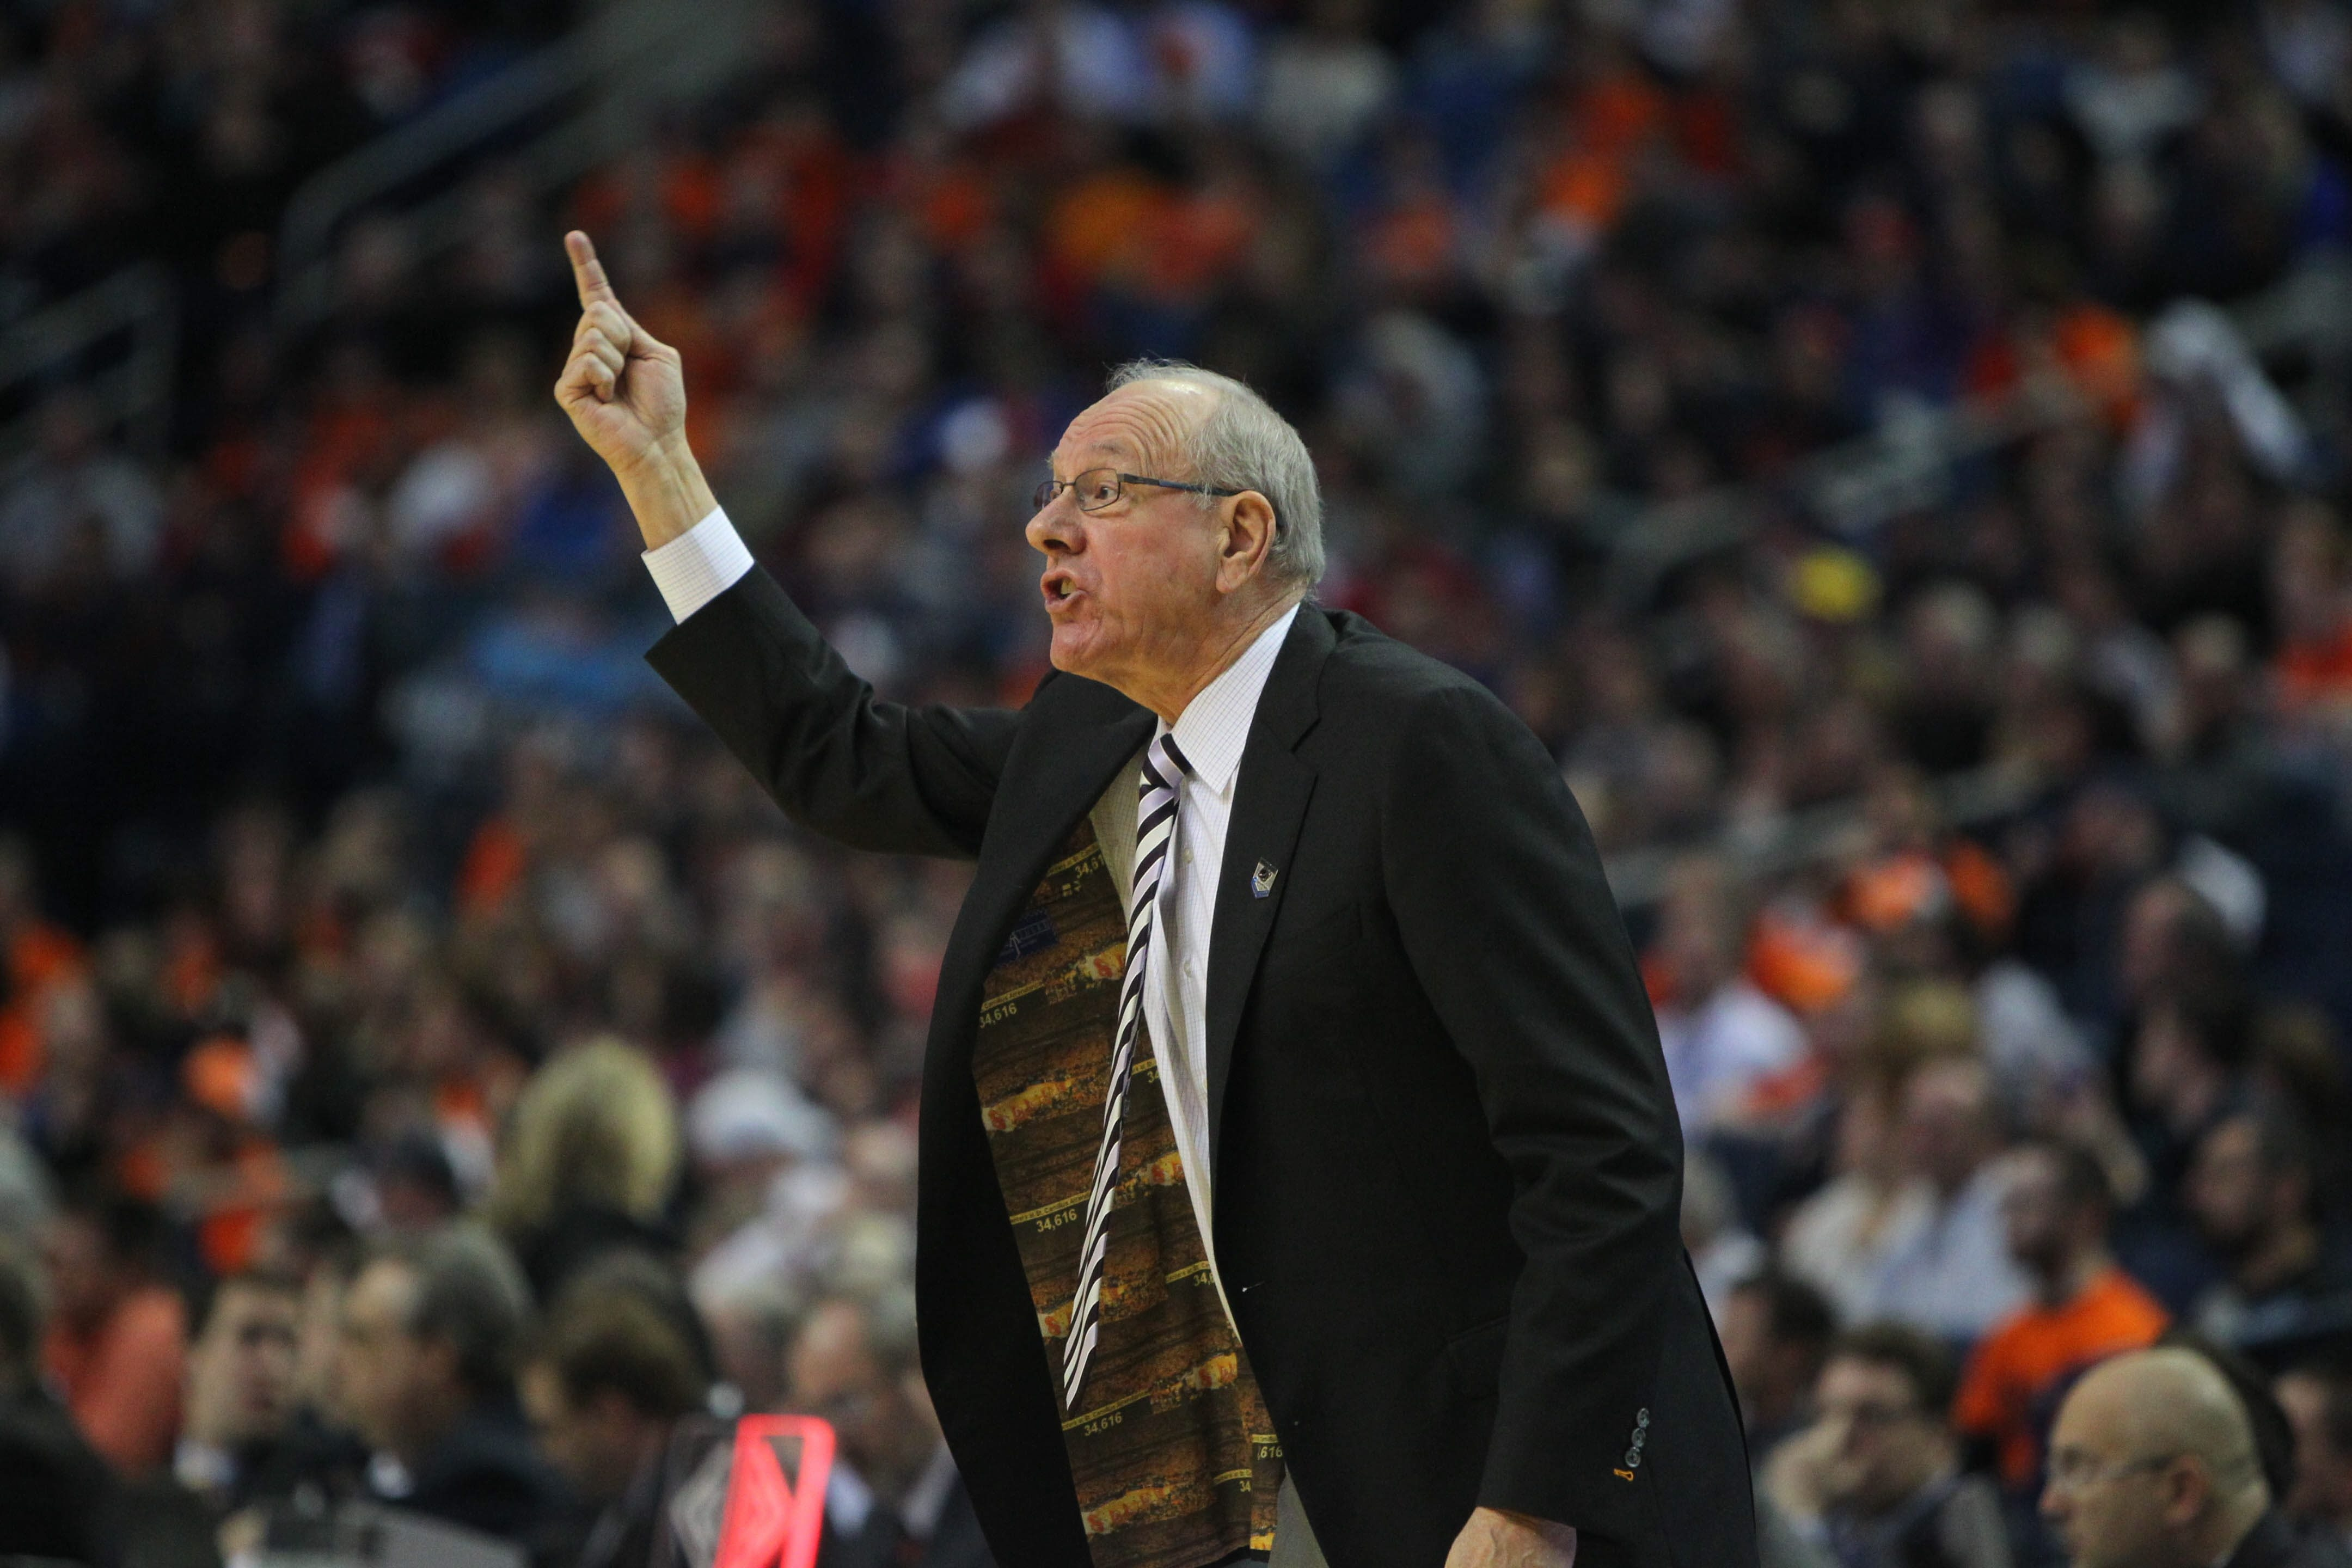 Syracuse coach Jim Boeheim gestures to his players during the third-round game against Dayton on Saturday.